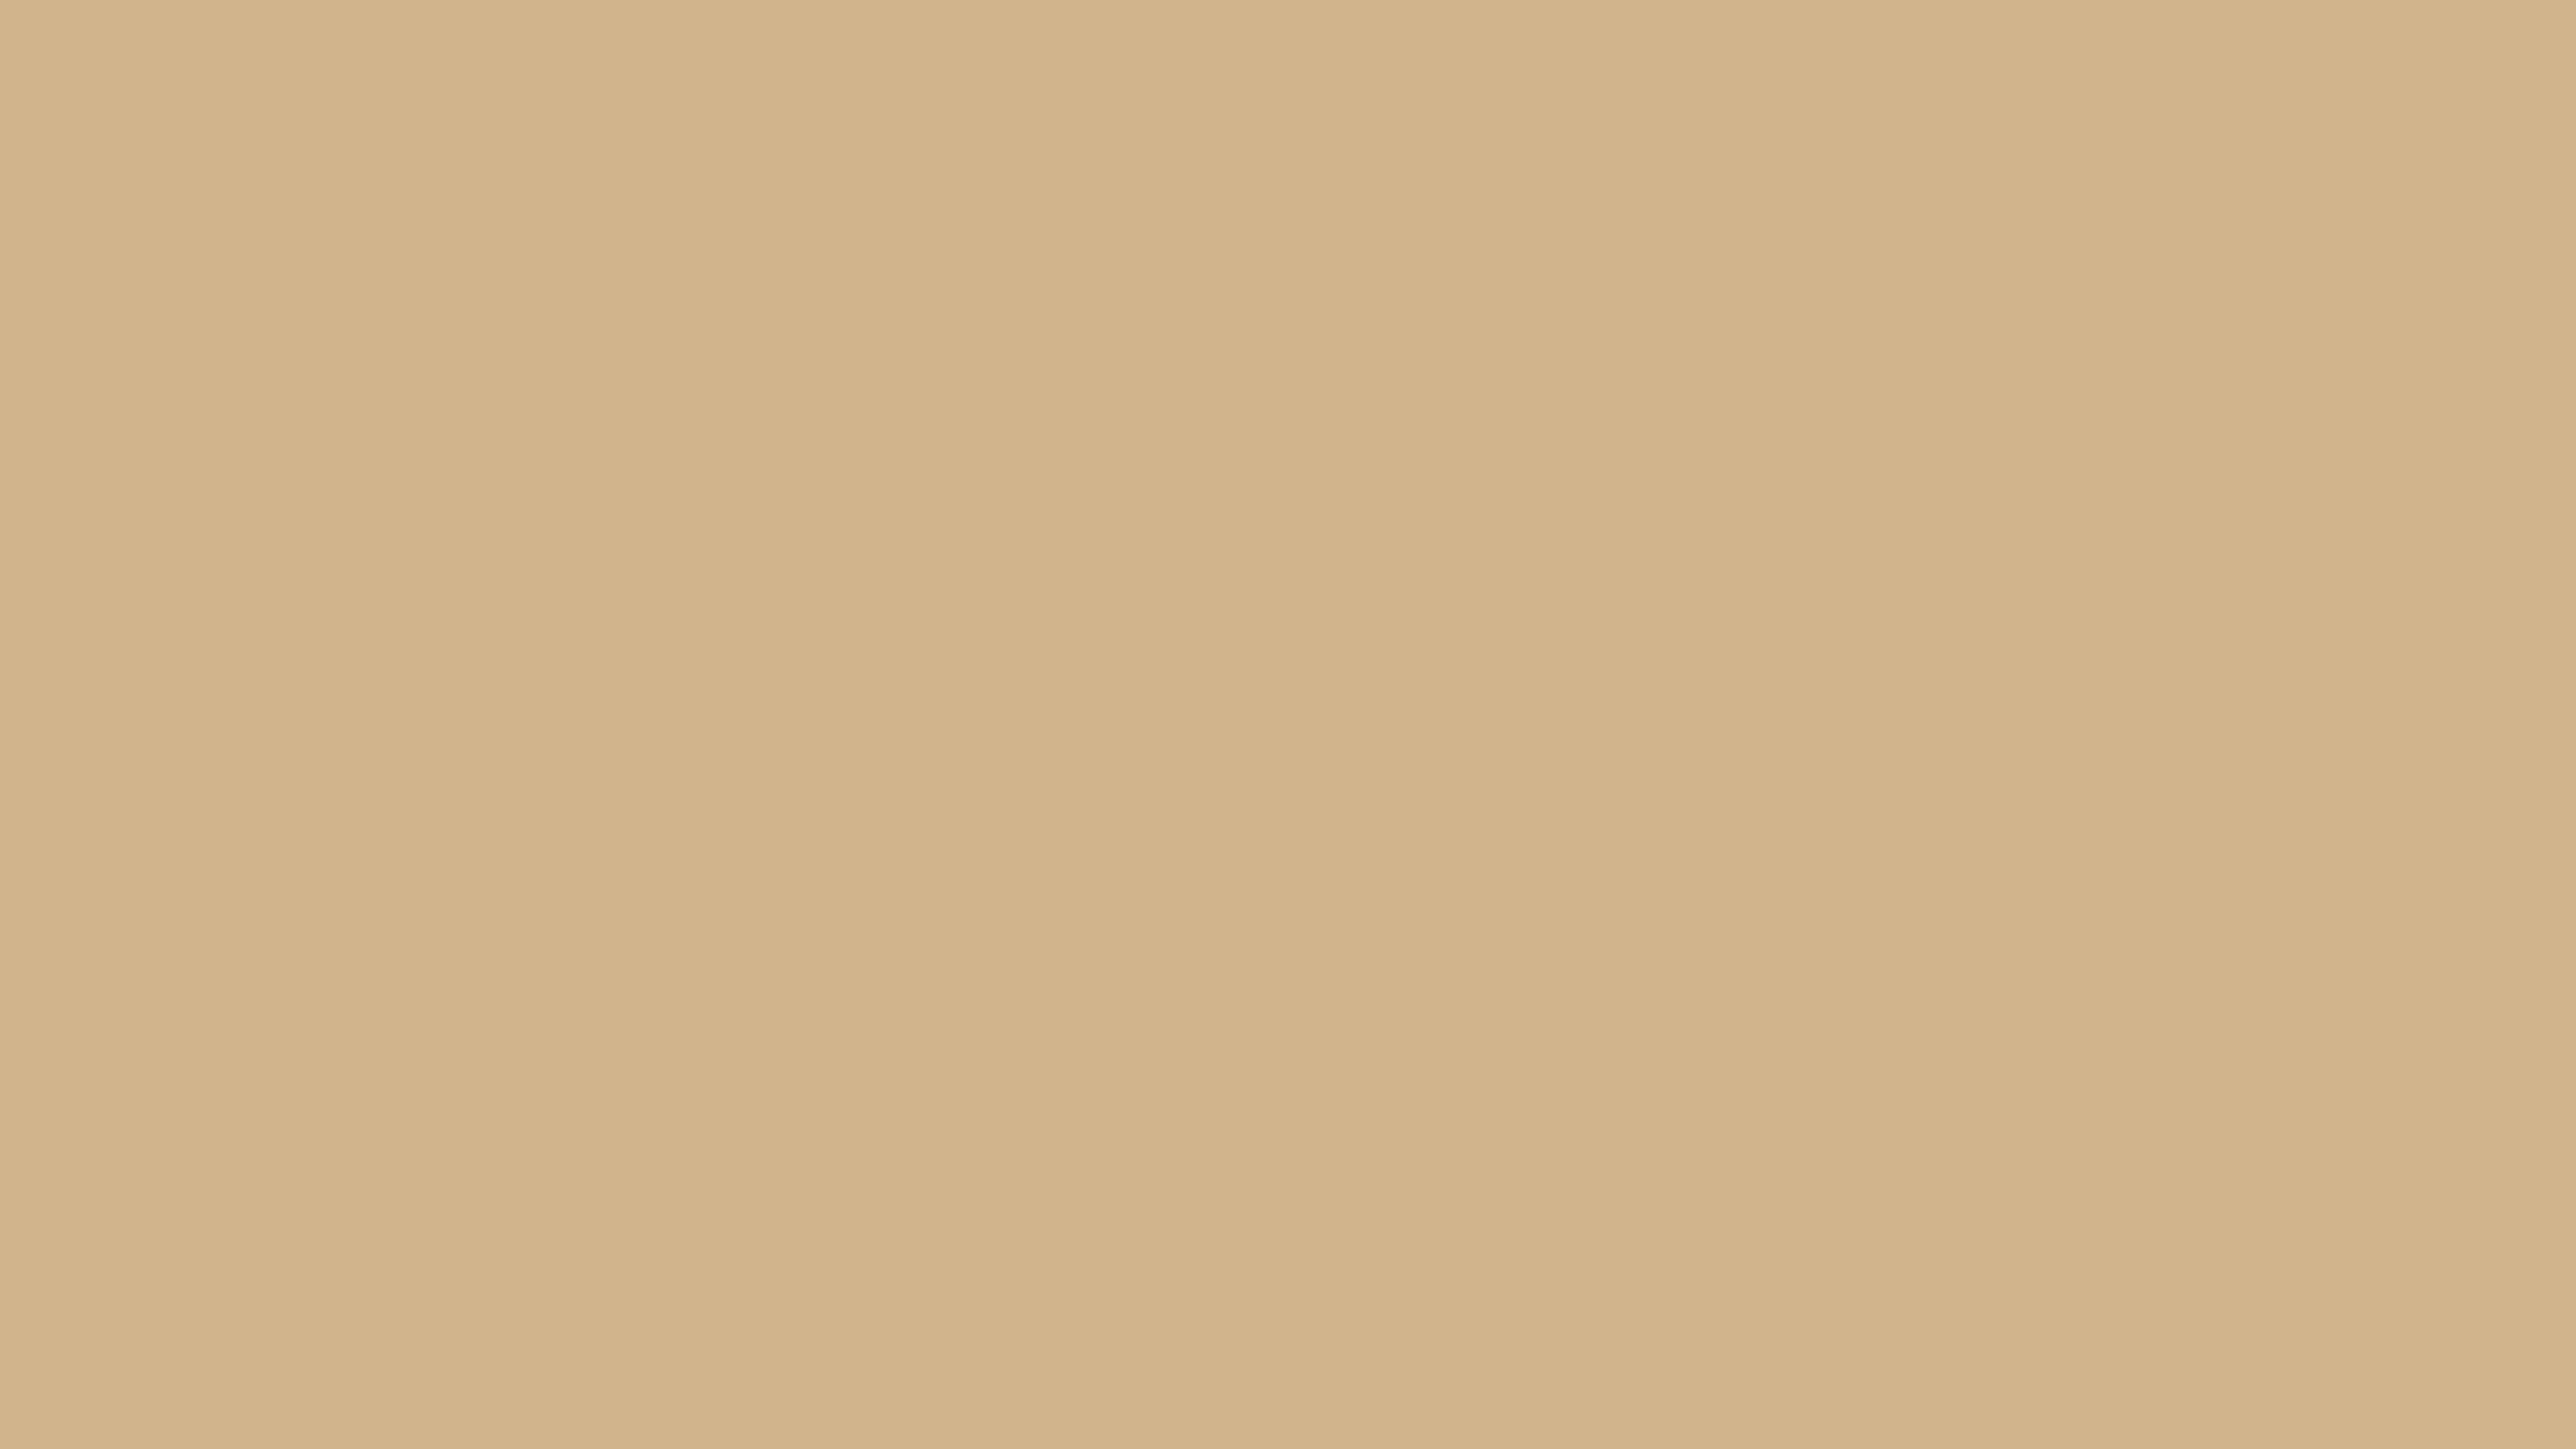 3840x2160 Tan Solid Color Background